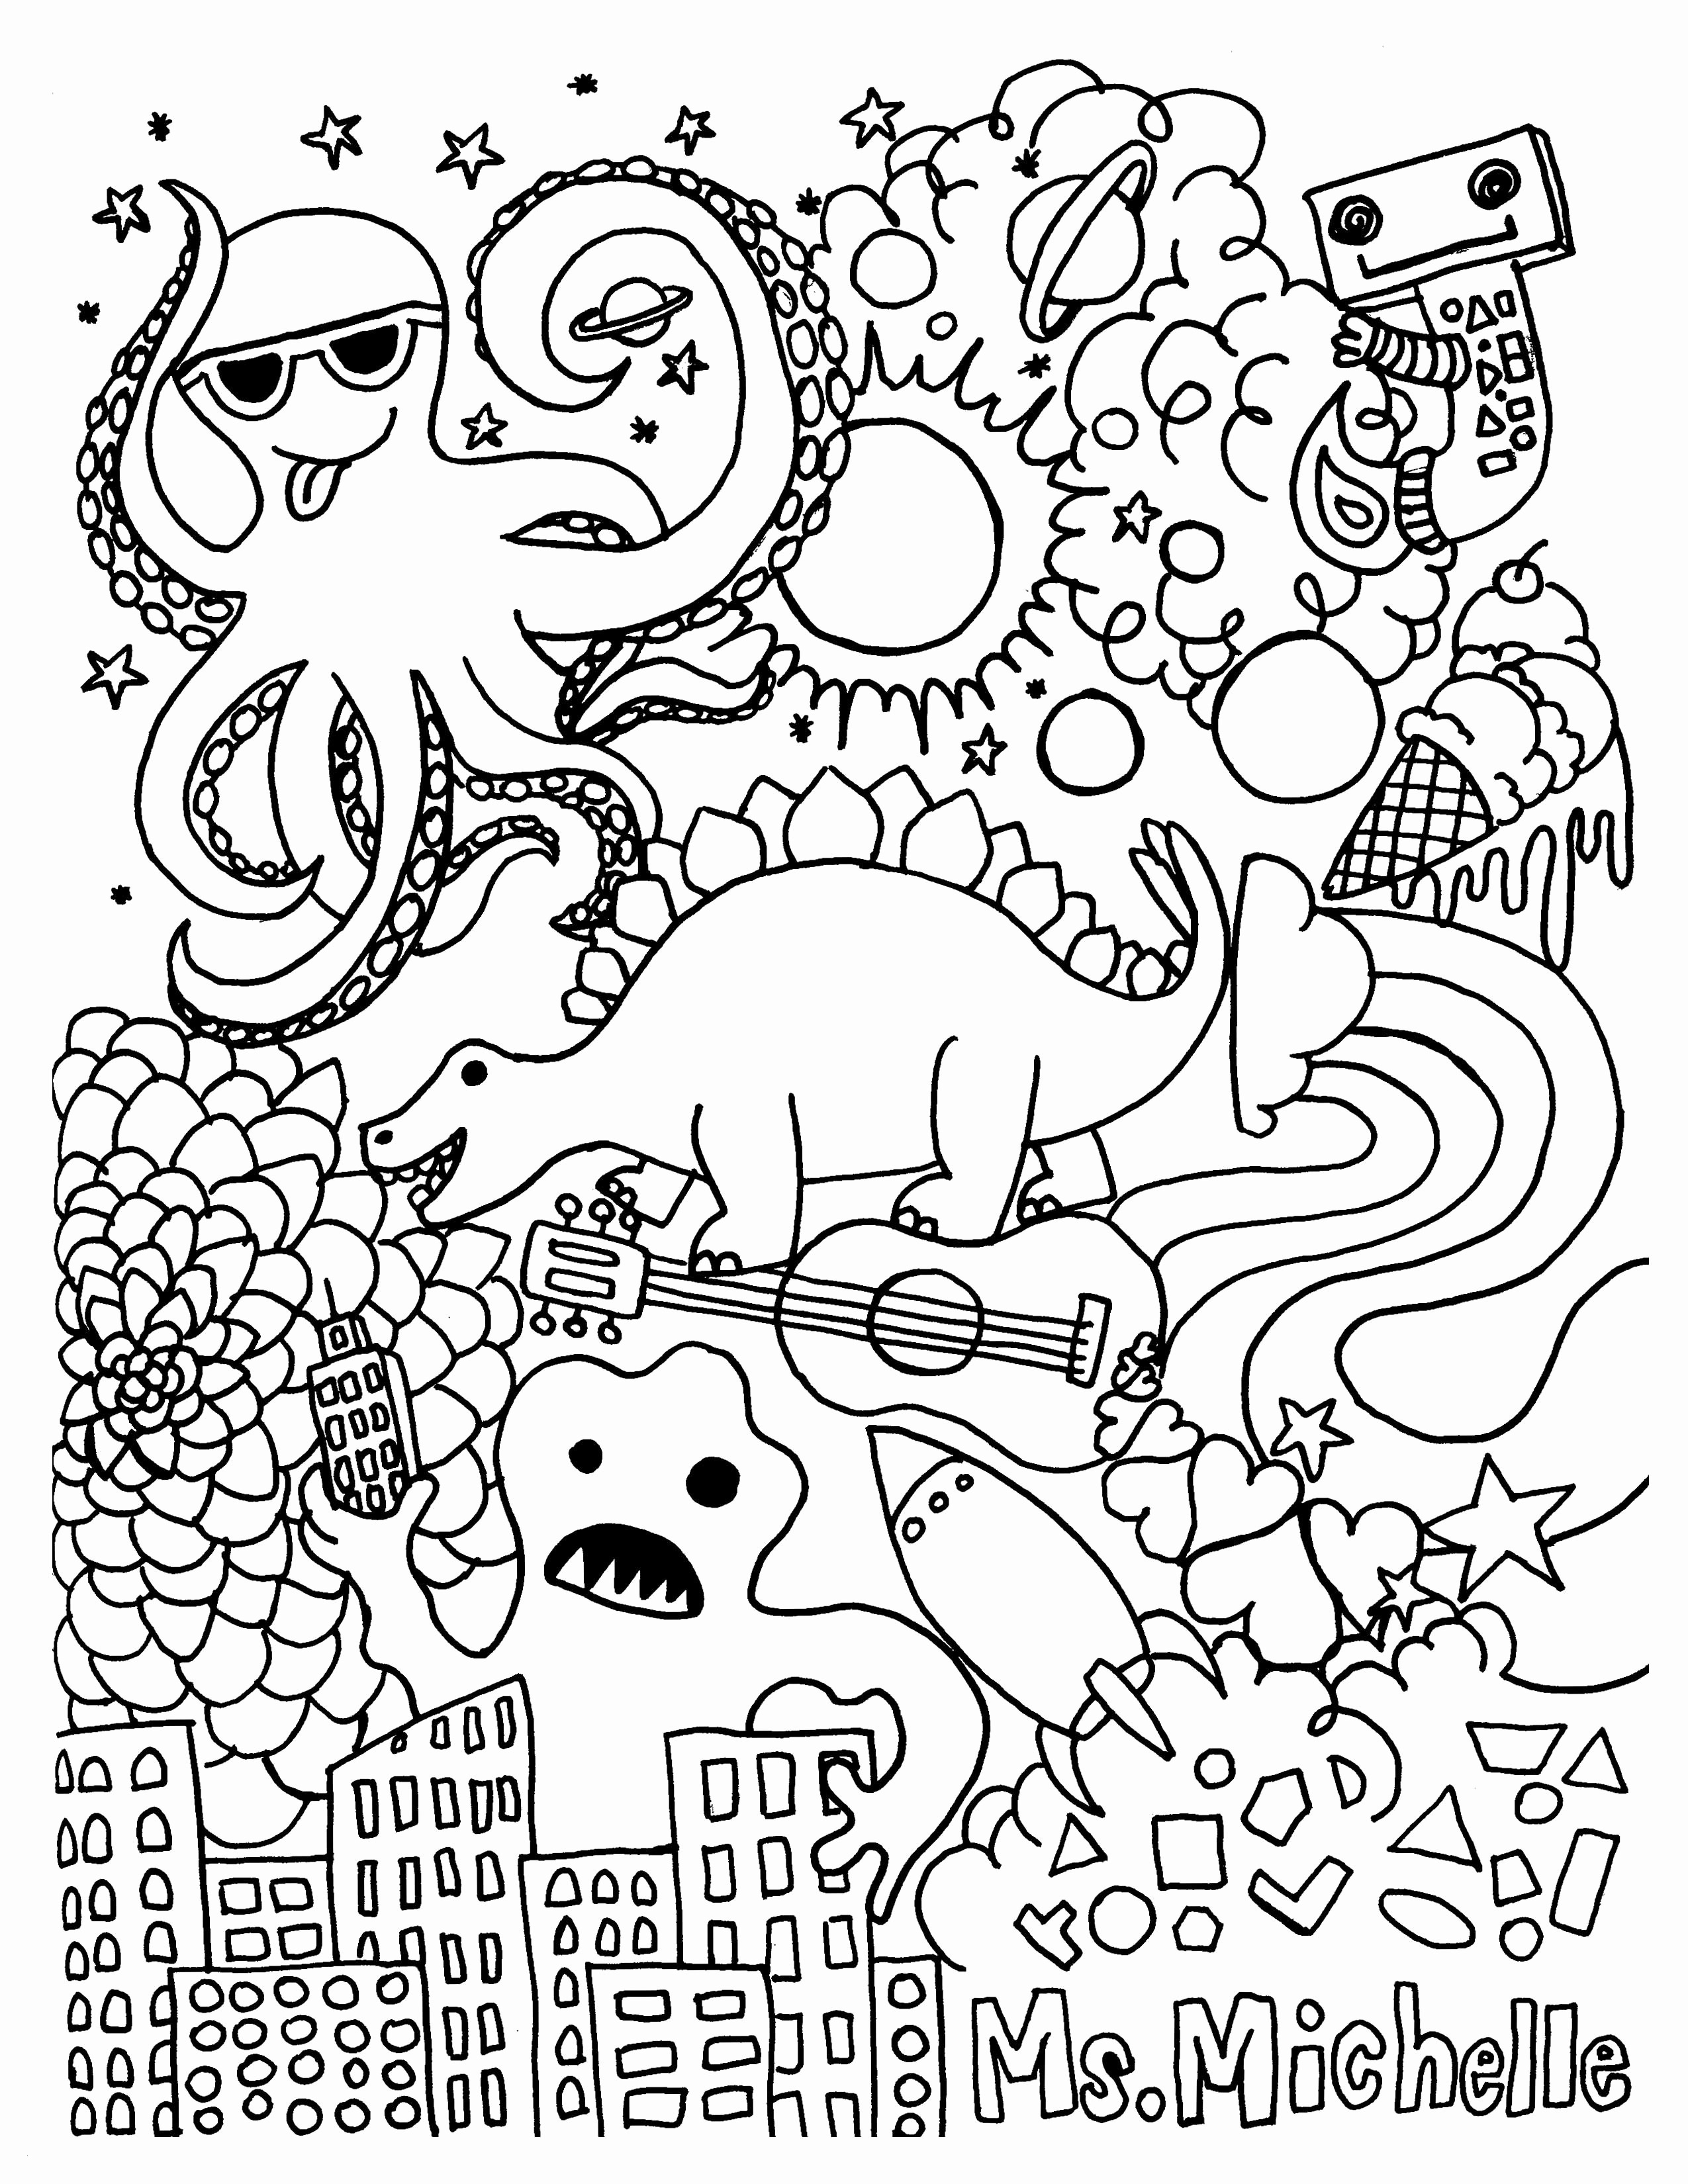 hillary clinton coloring pages Collection-Free Election Day Coloring Pages Hillary Clinton Coloring Page Inspirational Hillary Clinton Coloring 13-o